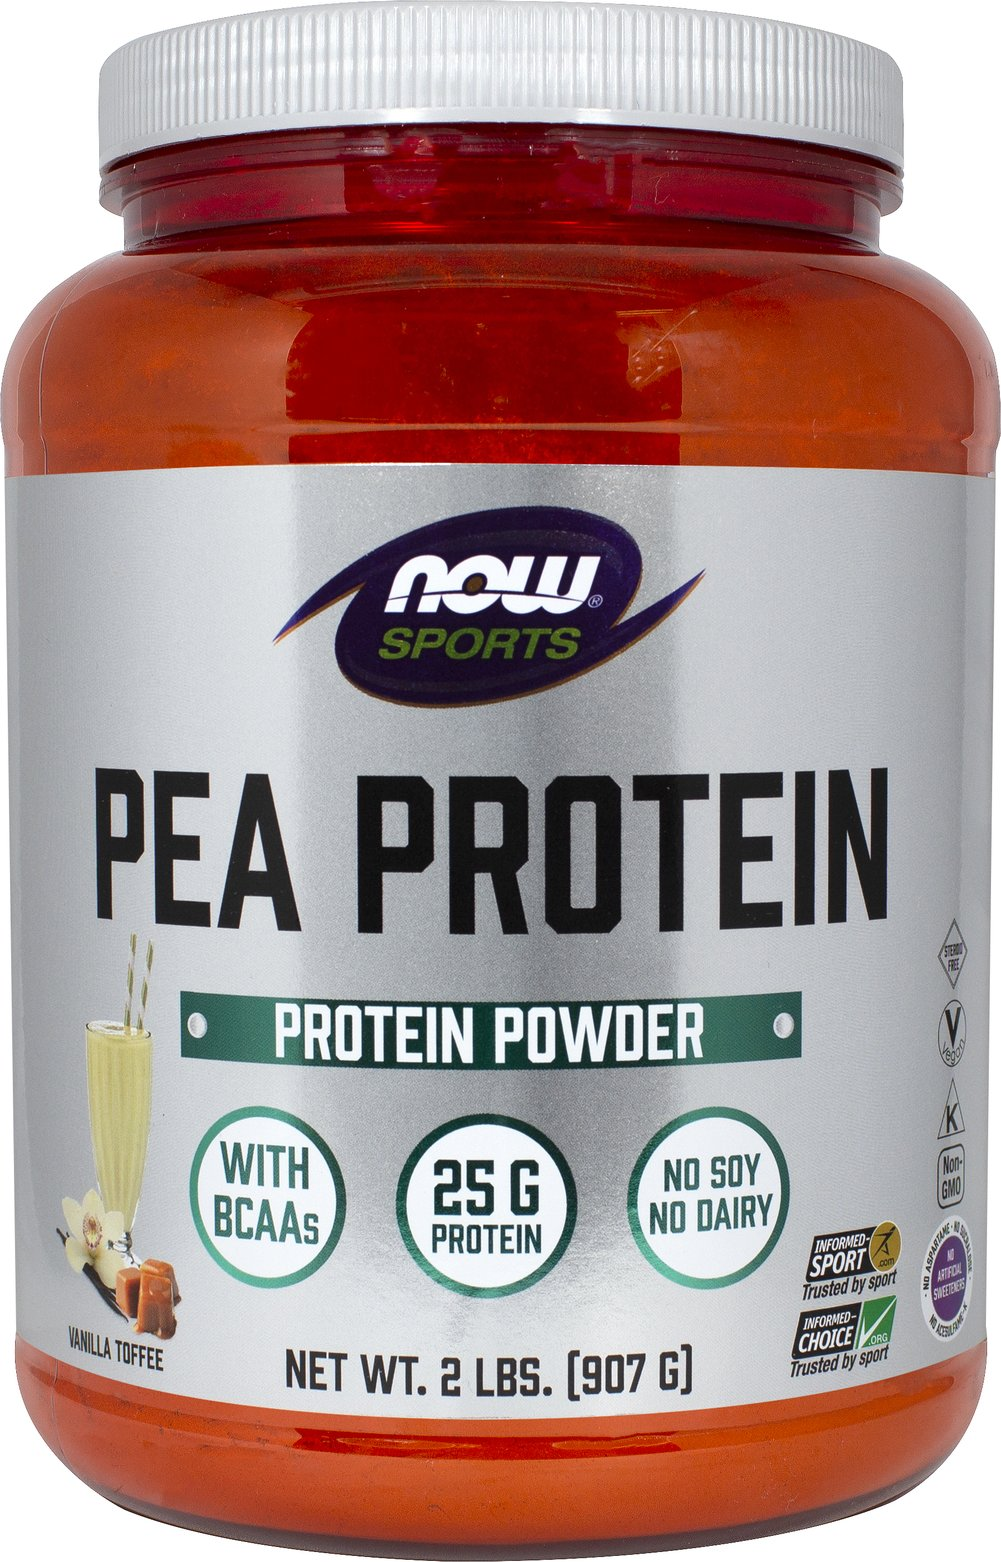 Pea Protein Vanilla Toffee Thumbnail Alternate Bottle View